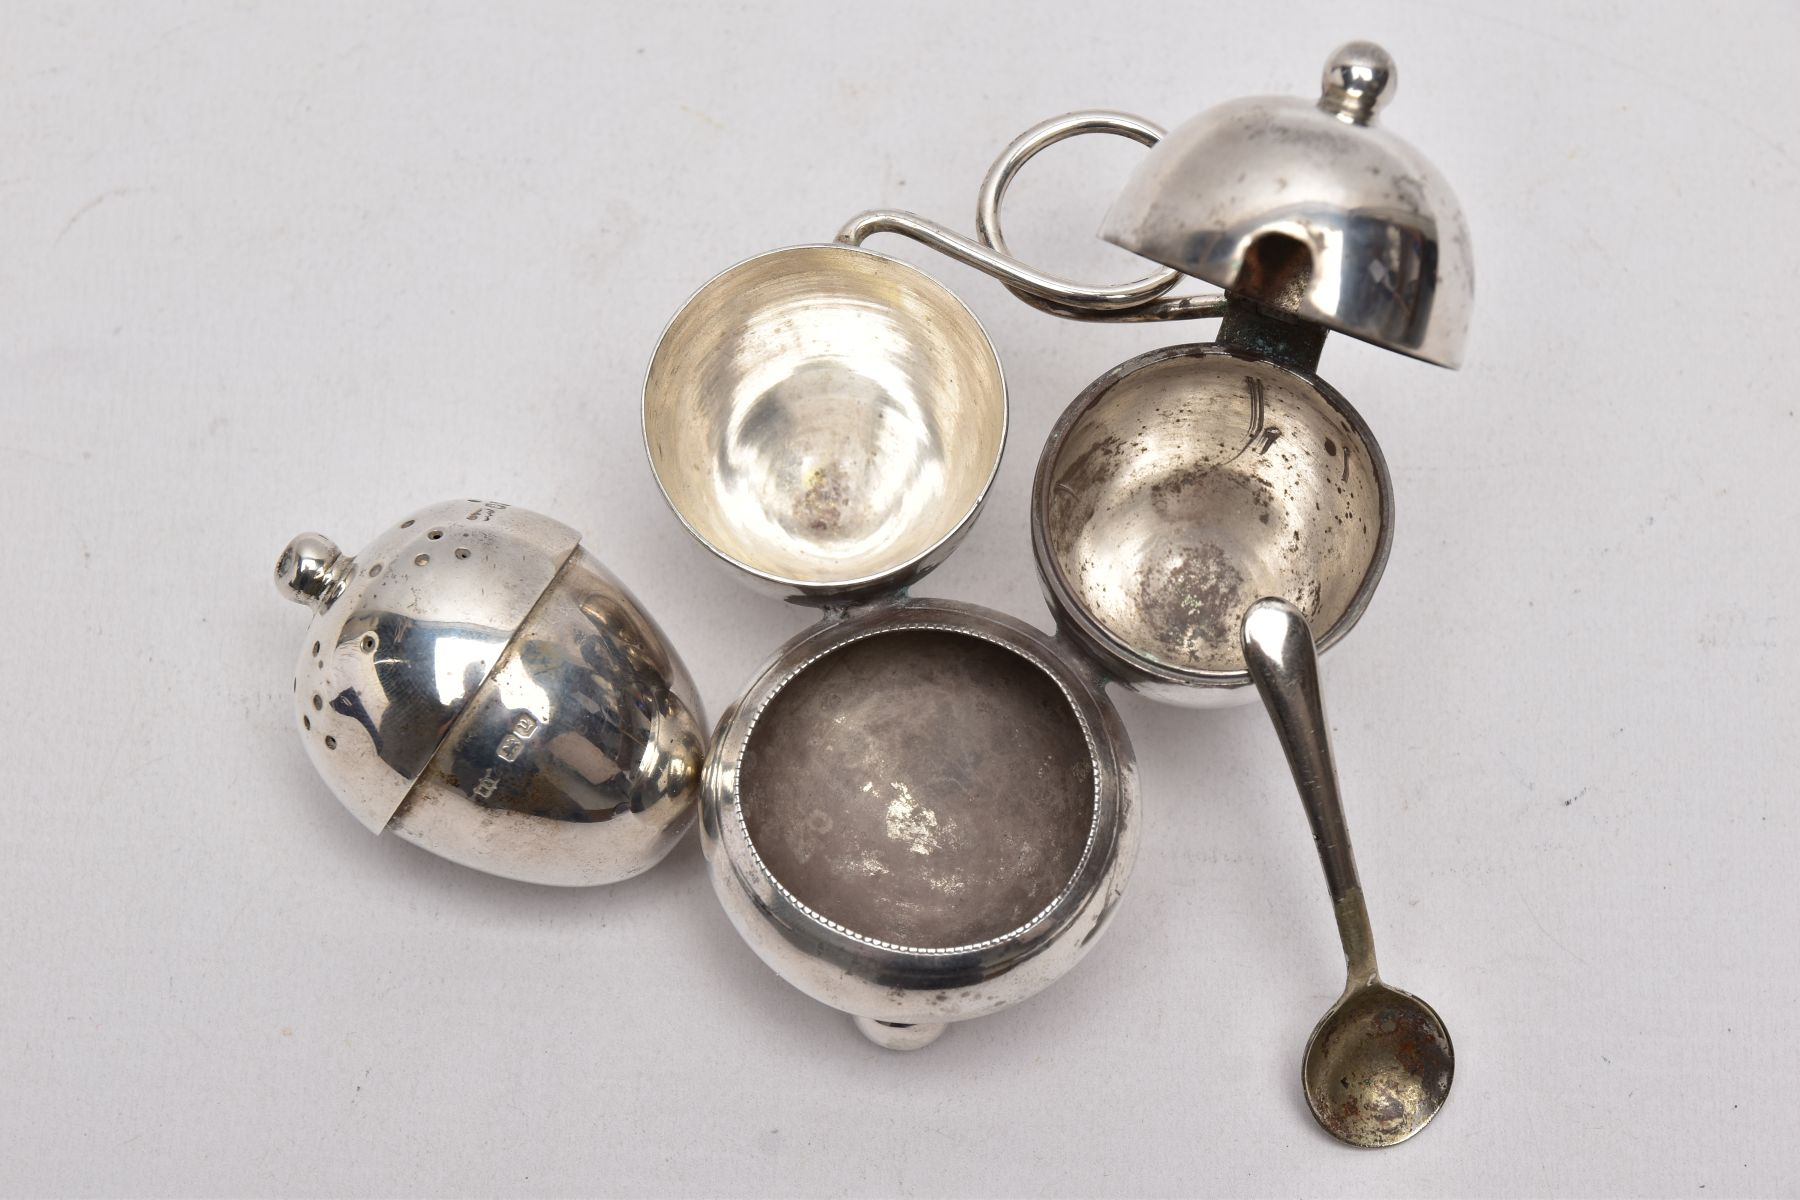 AN EARLY 20TH CENTURY 'MAPPIN & WEBB' CRUET SET, a three piece set with integral strand, - Image 4 of 5